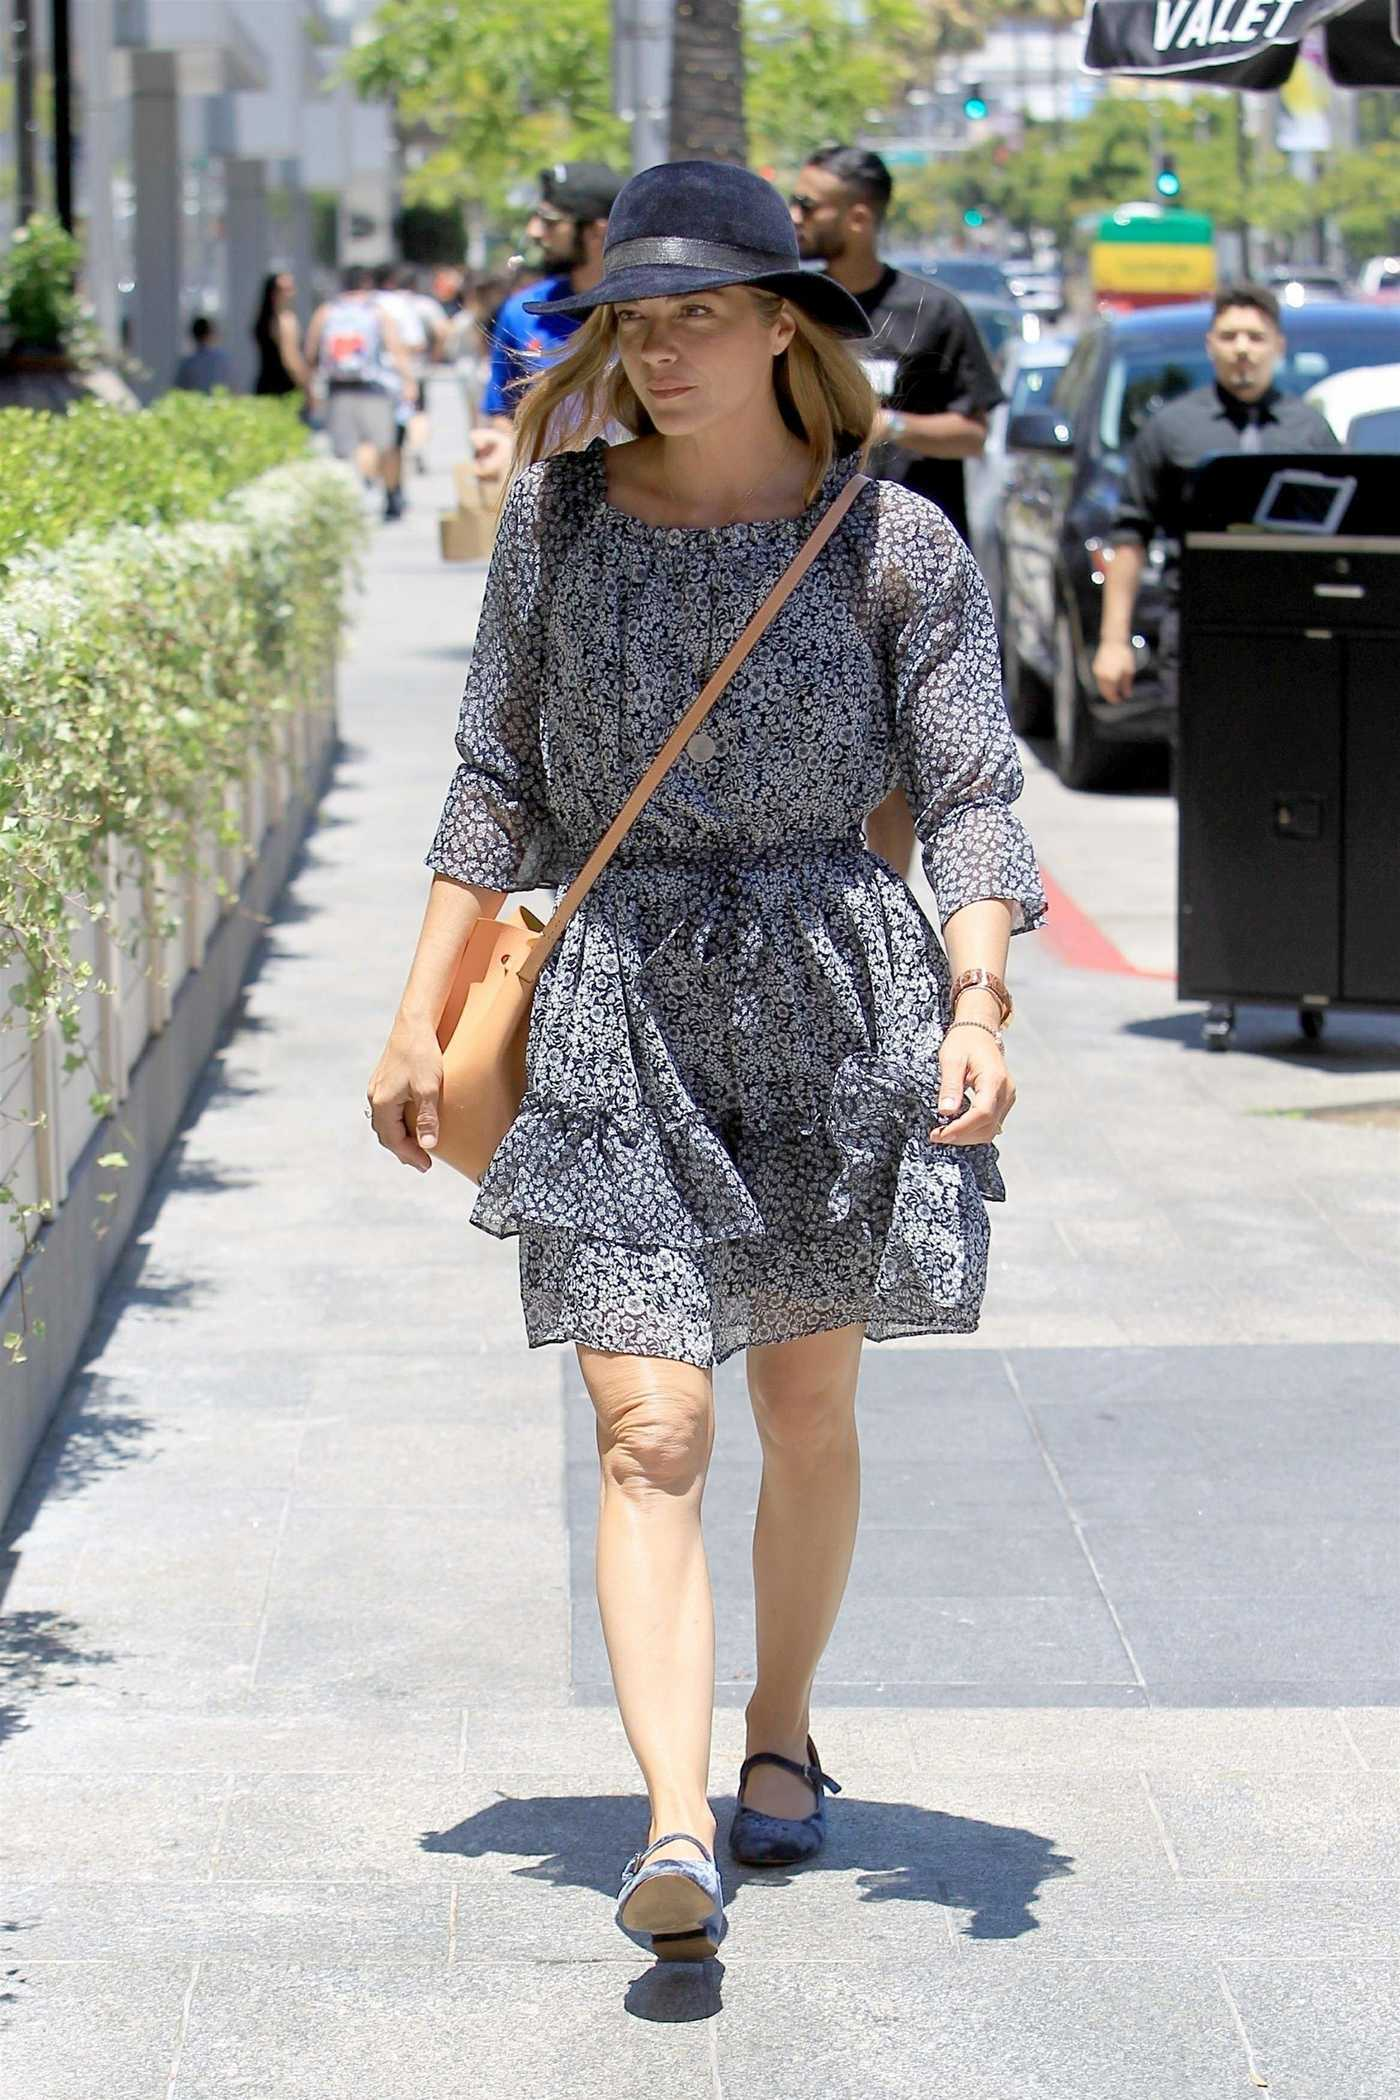 Selma Blair Was Seen Out For Lunch at Avra in Beverly Hills 06/26/2018